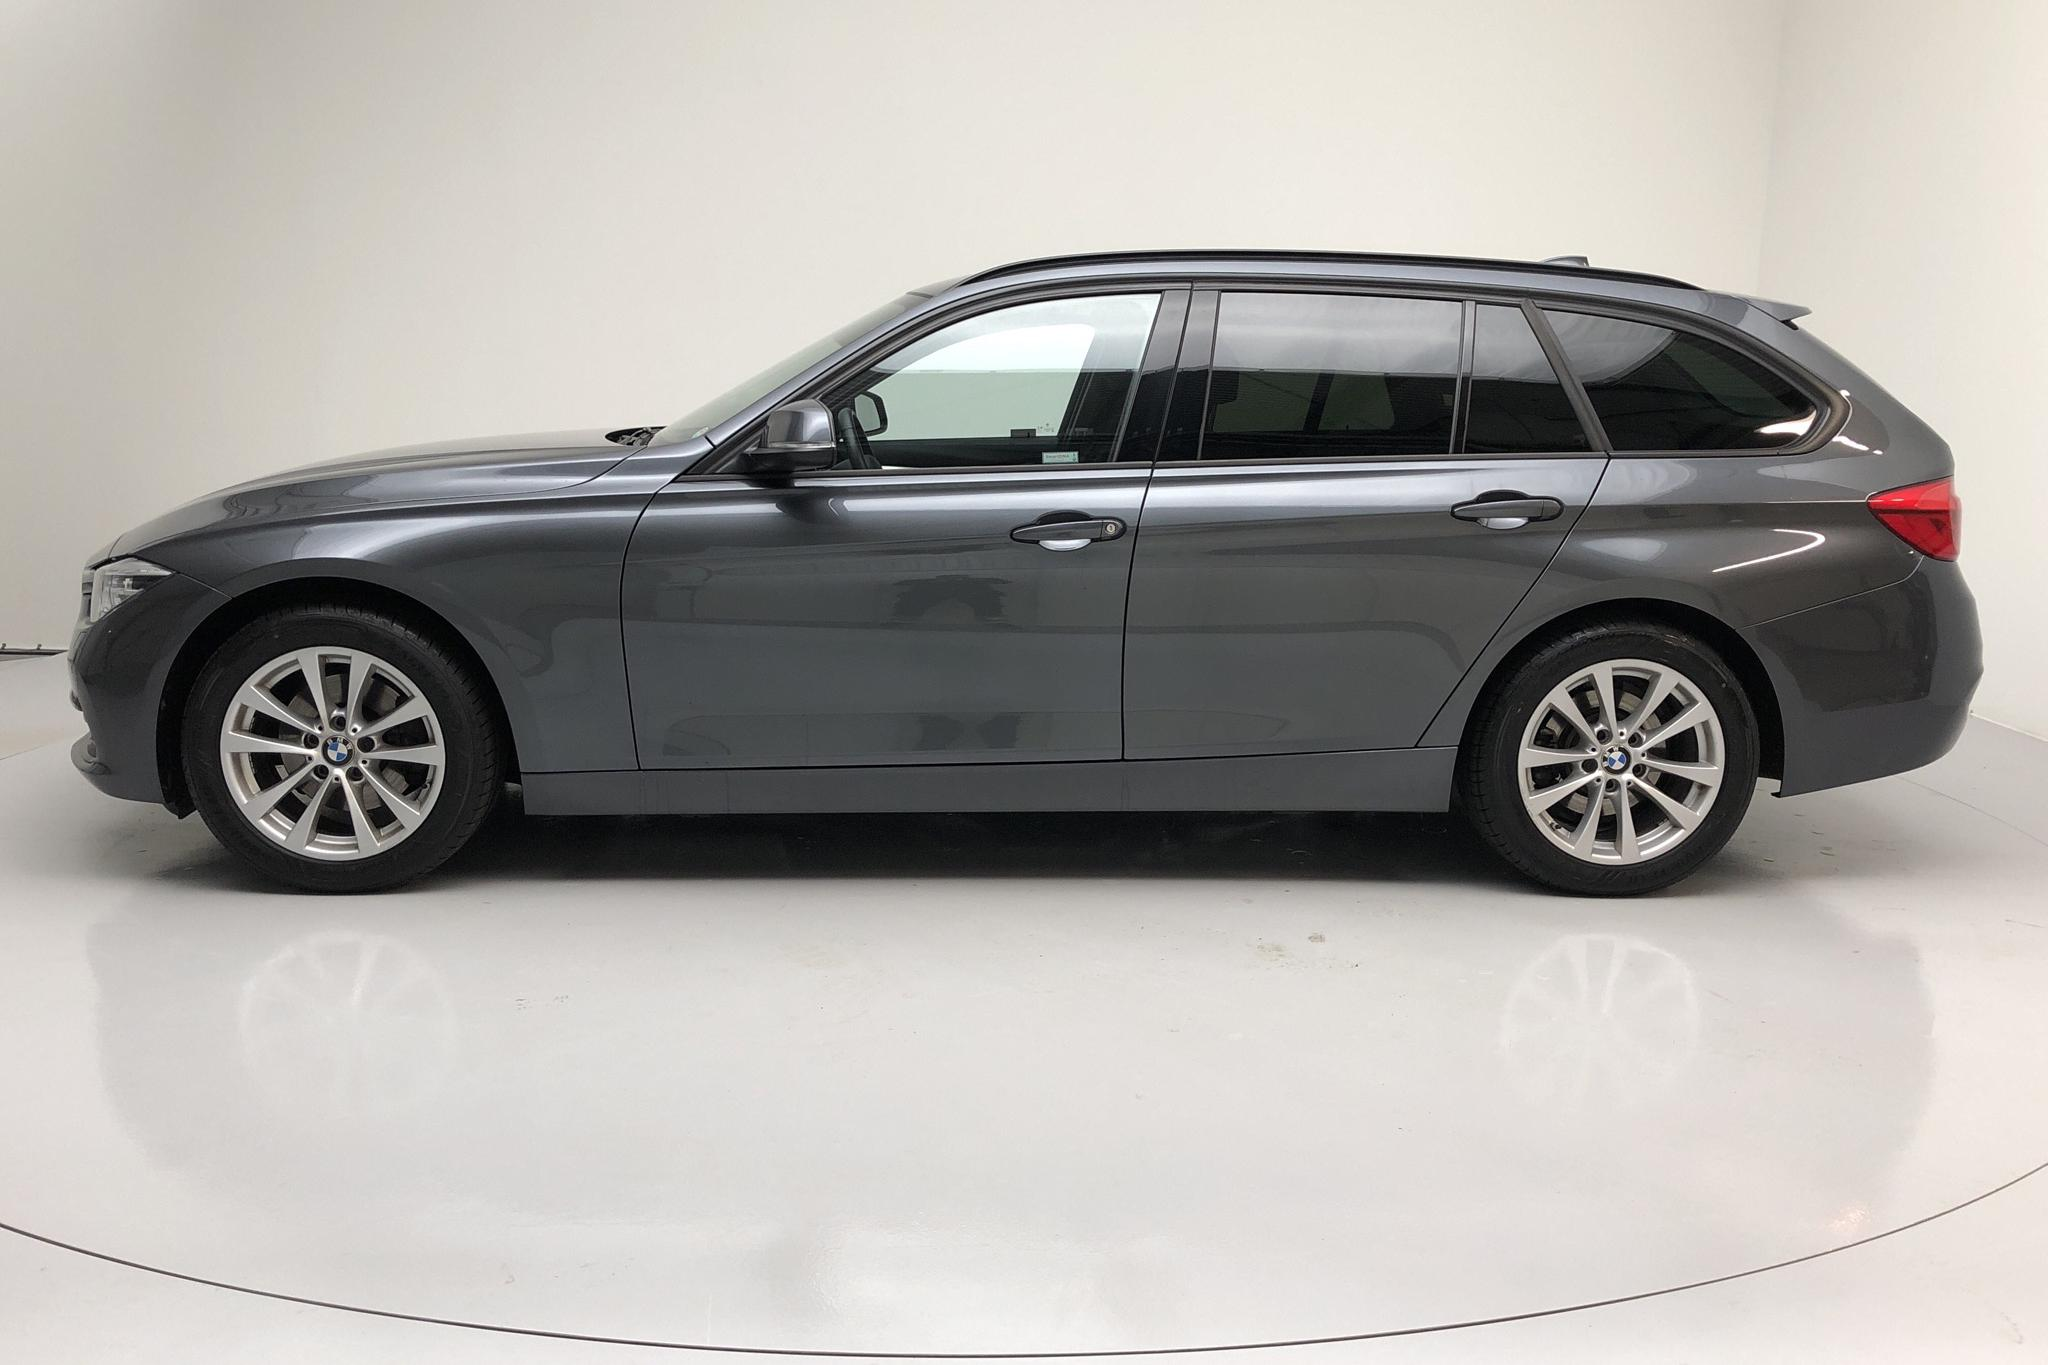 BMW 320d Touring, F31 (190hk) - 39 740 km - Automatic - gray - 2018